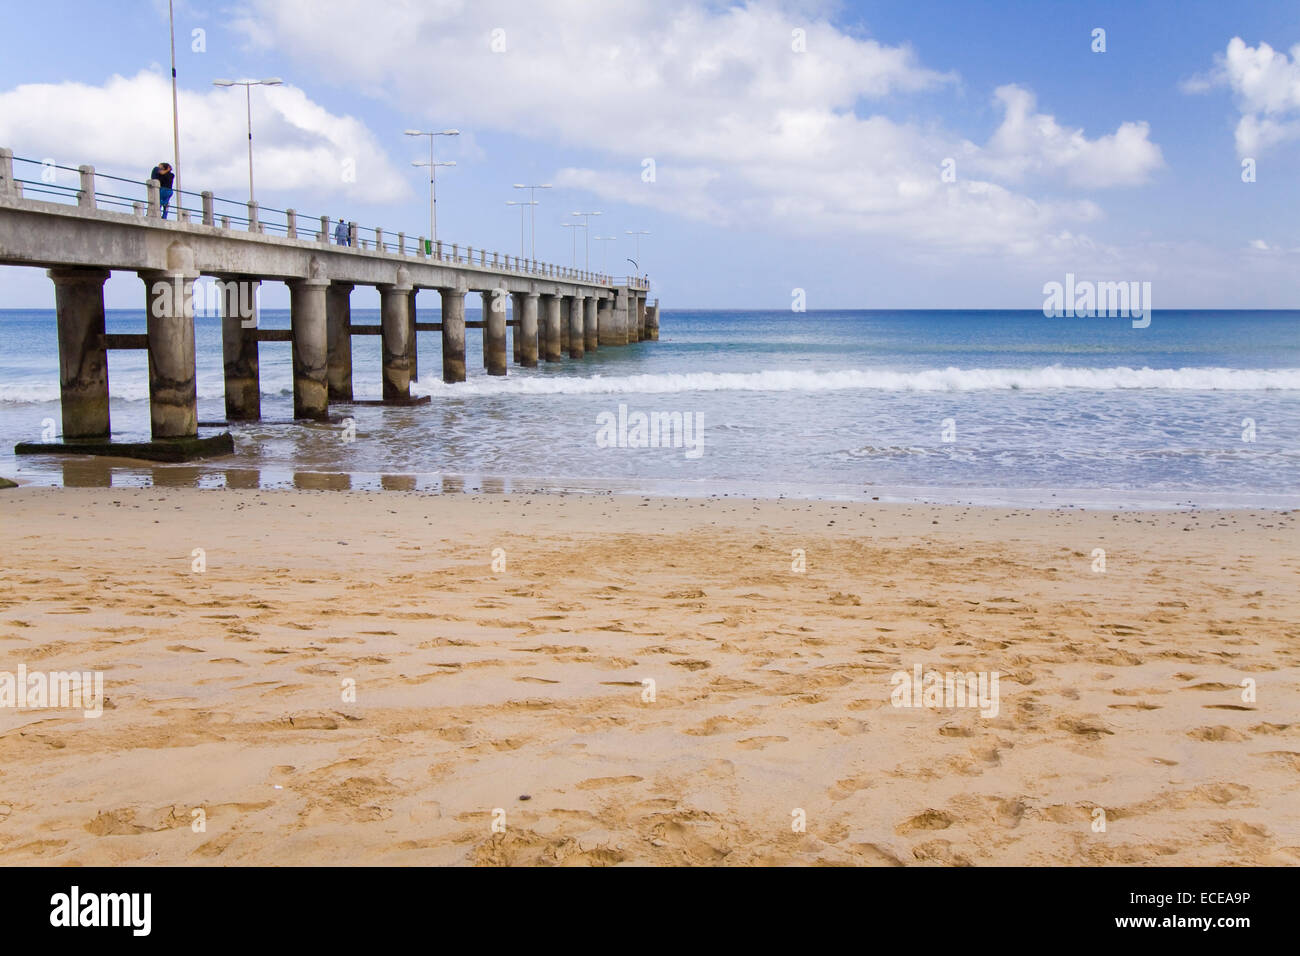 Pier at Porto Santo, Madeira islands, Portugal - Stock Image